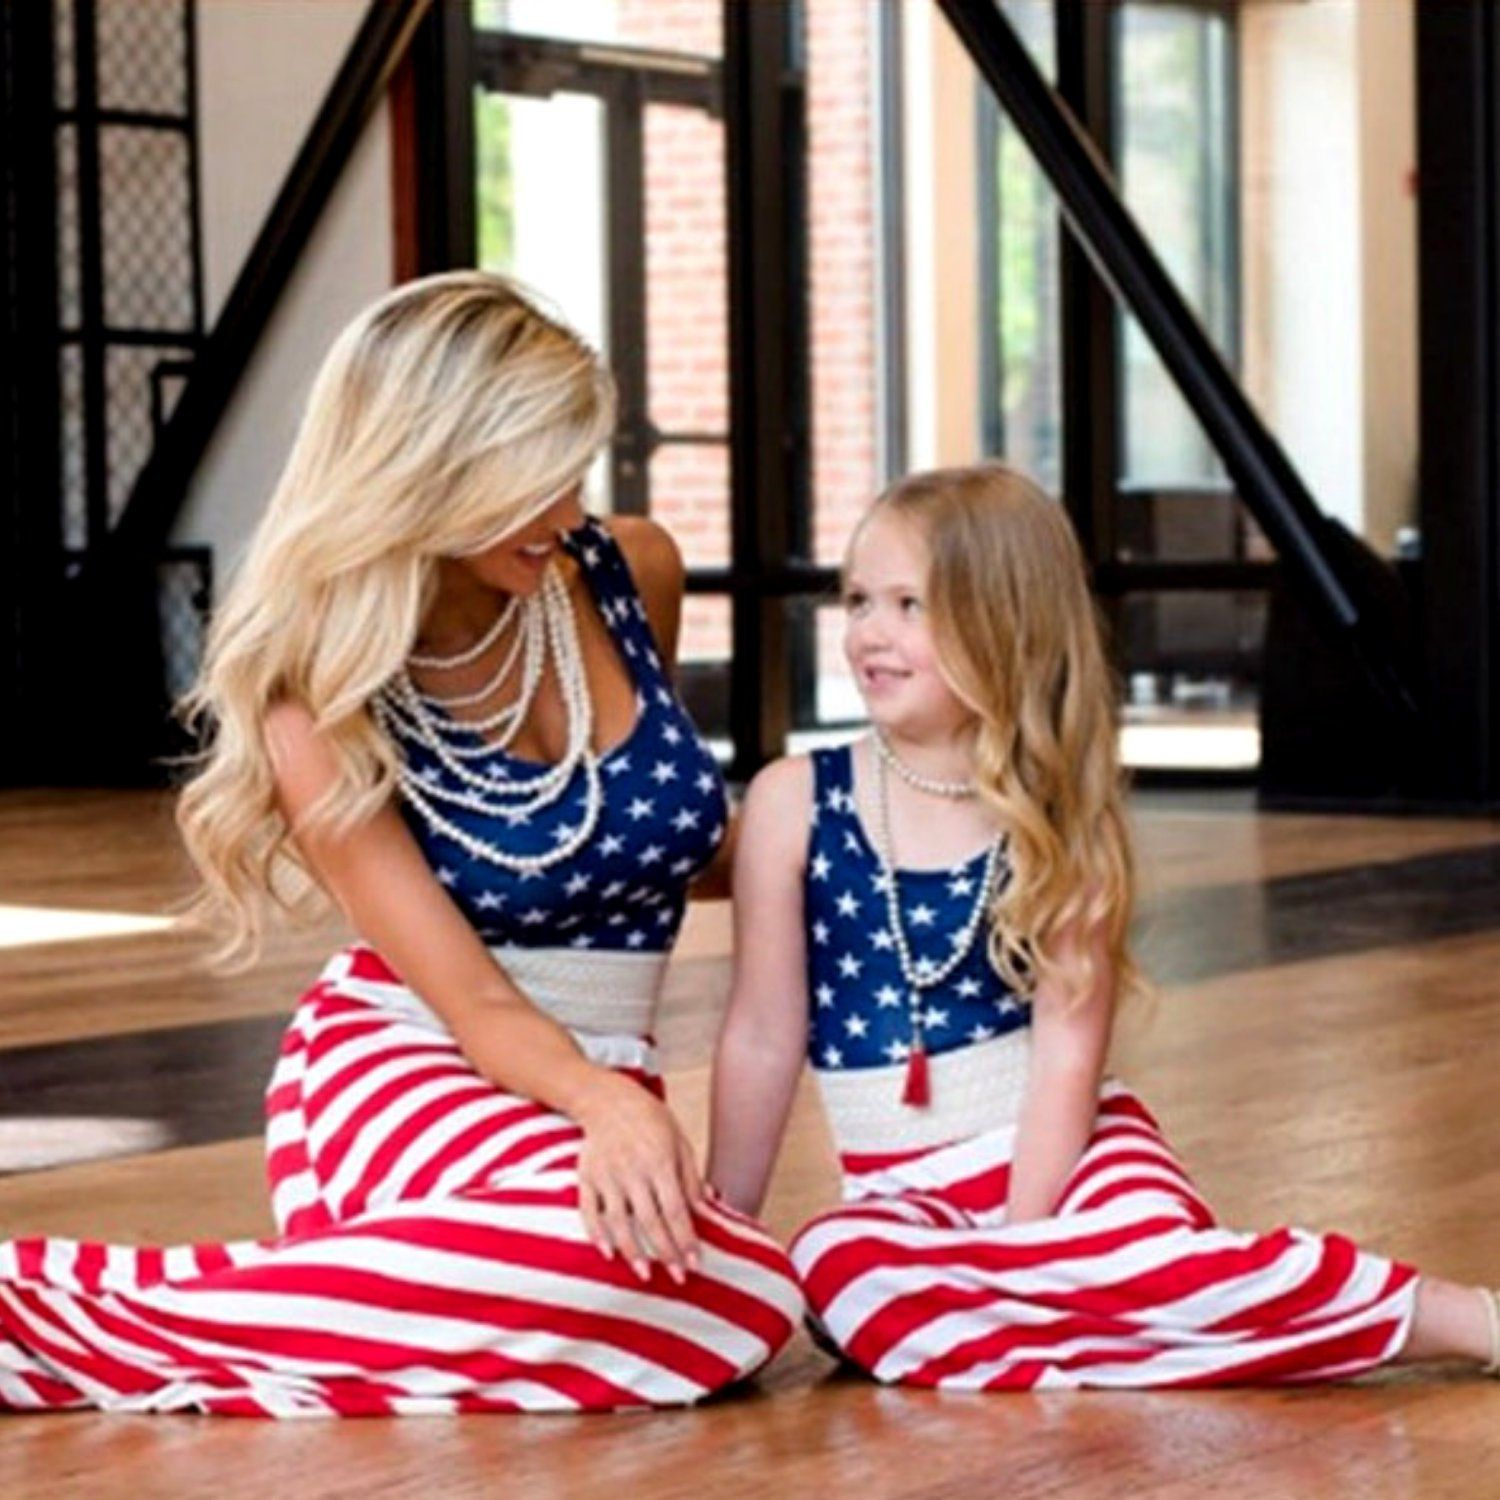 Mommy And Me Outfits 4th Of July Tank Top Maxi Dresses Matching July 4th Dress Red White Blue Memorial Day Dress [ 1500 x 1500 Pixel ]